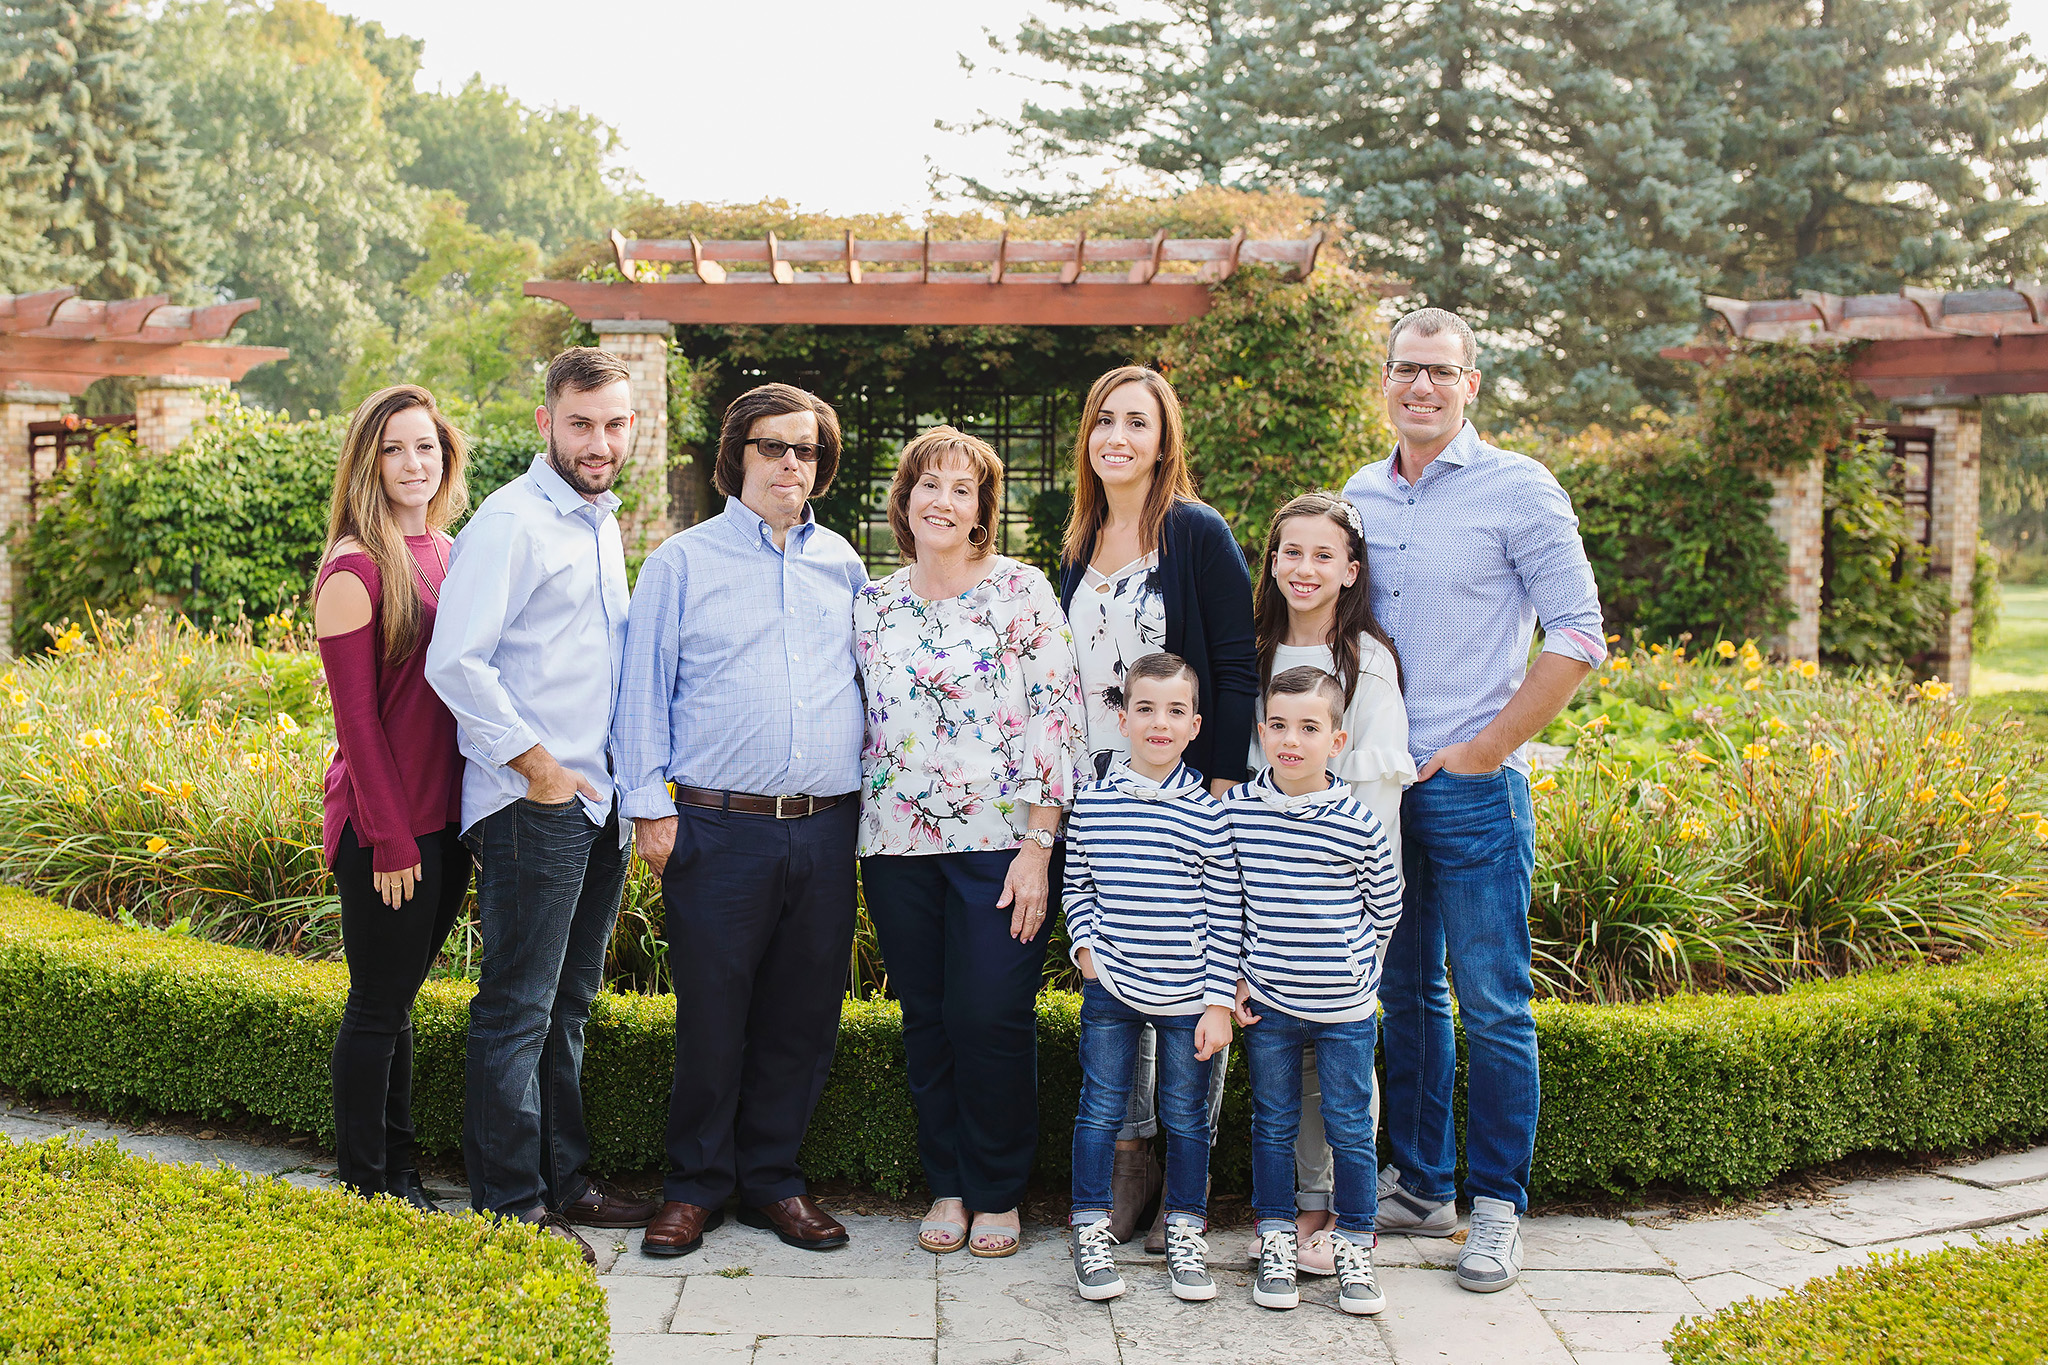 london_ontario_family_photographer-civic_gardens_extended_family_session-raw_footage_photography001.jpg